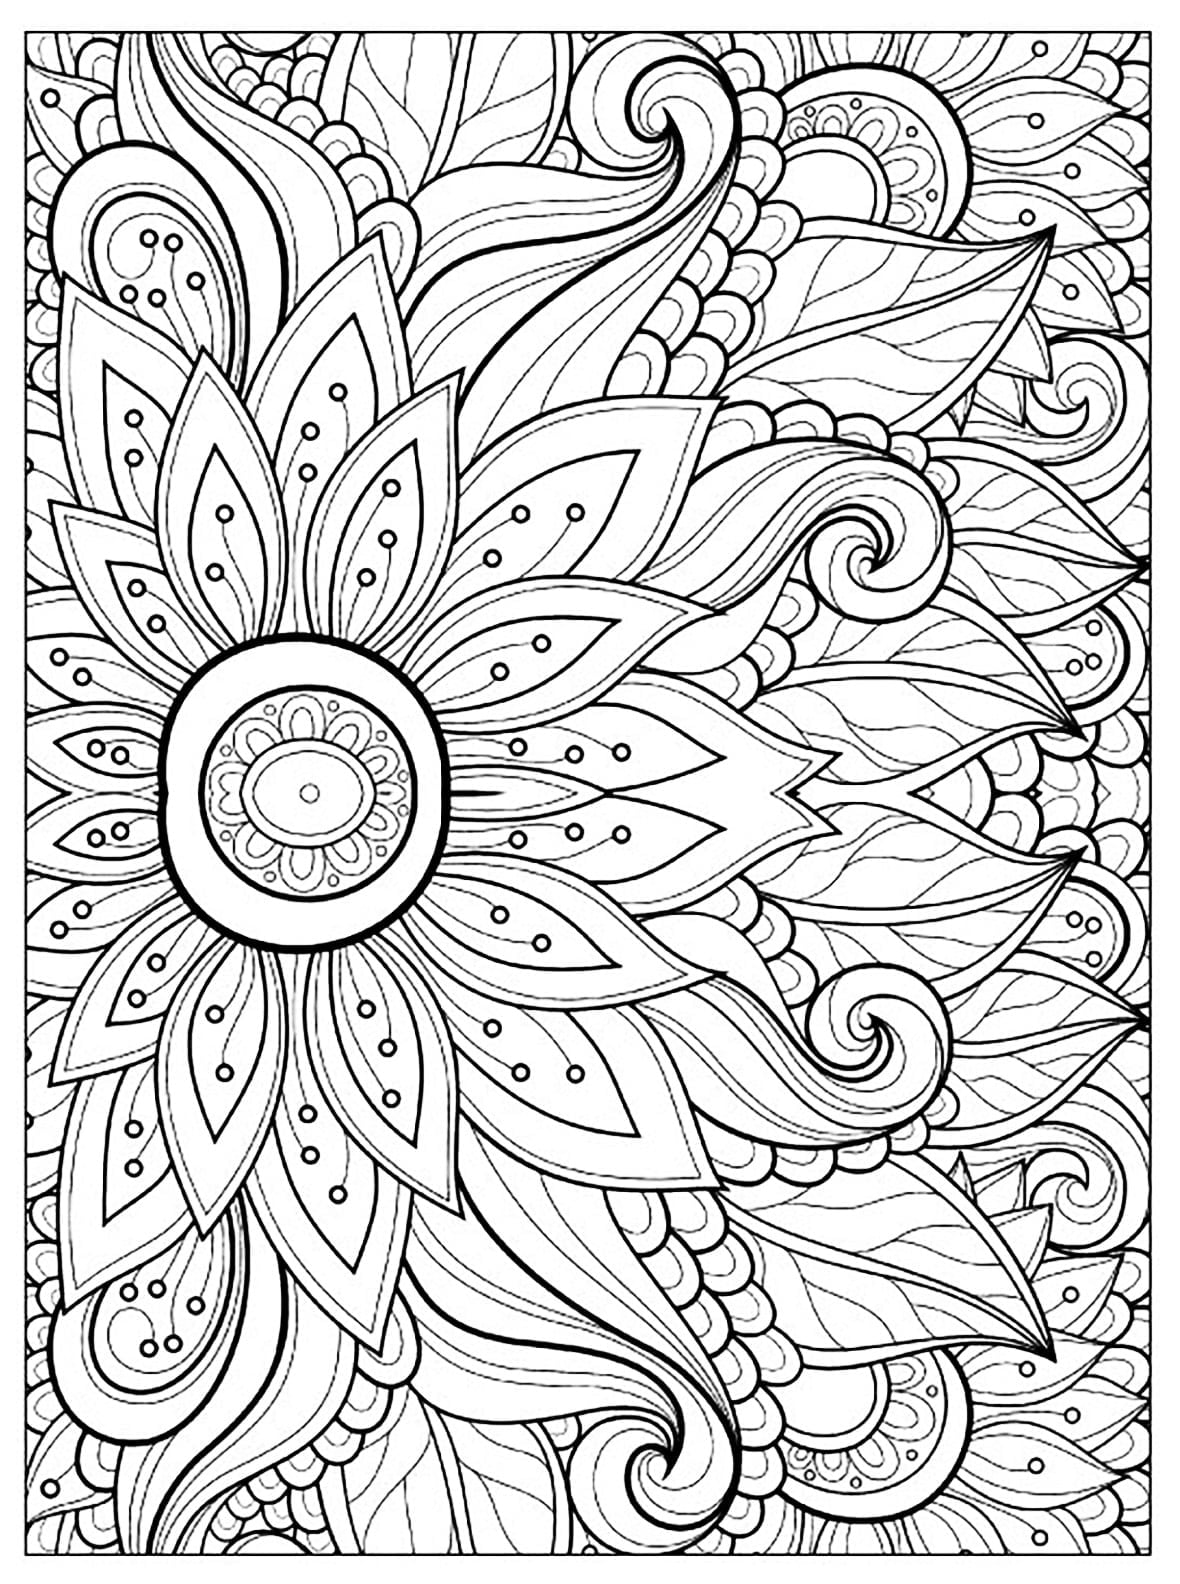 Adult Flower Coloring Pages Bloodbrothers Me Throughout